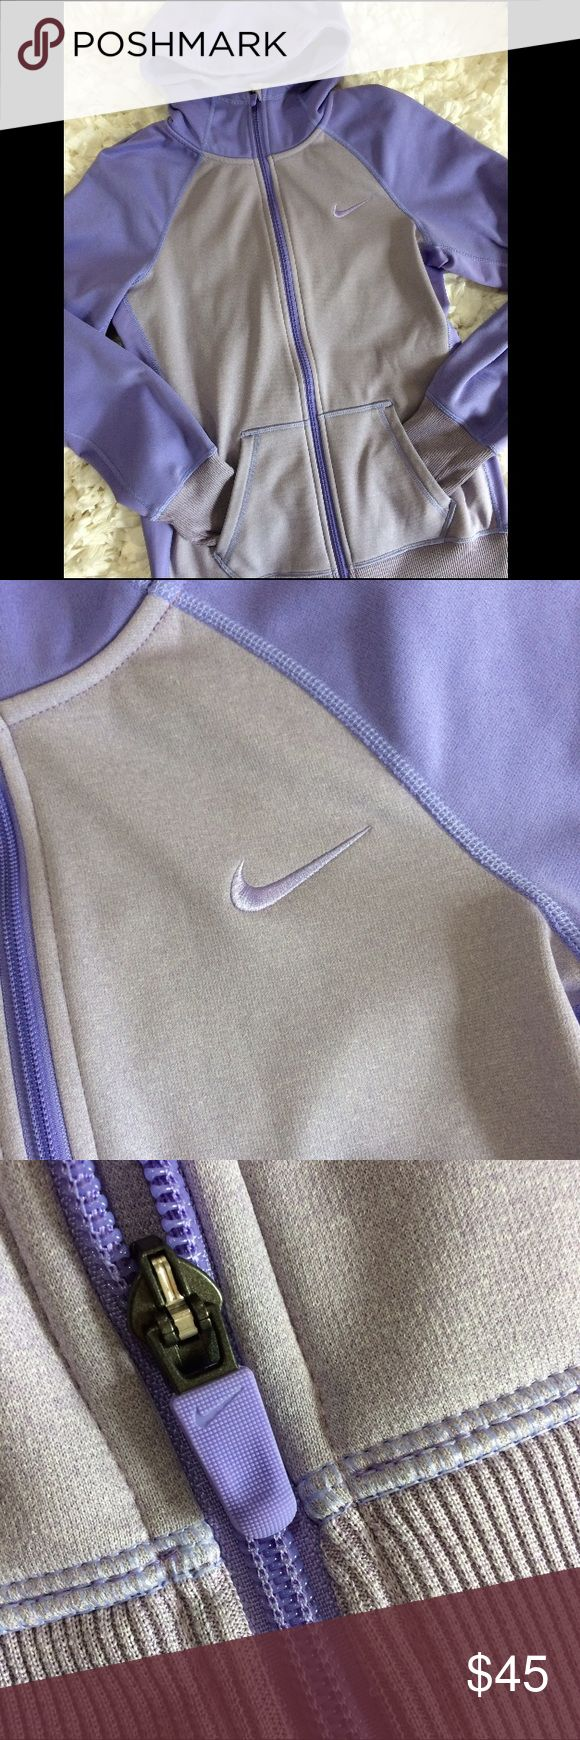 Nike Therma-Fit purple zip up hoodie S Great warm Nike swoosh logo zip up hoodie. In very gently used condition,looks new. The inner fleece is still super soft to the touch and does not show wash wear. Lots more nike available in my kloset,bundle and save! Nike Tops Sweatshirts & Hoodies